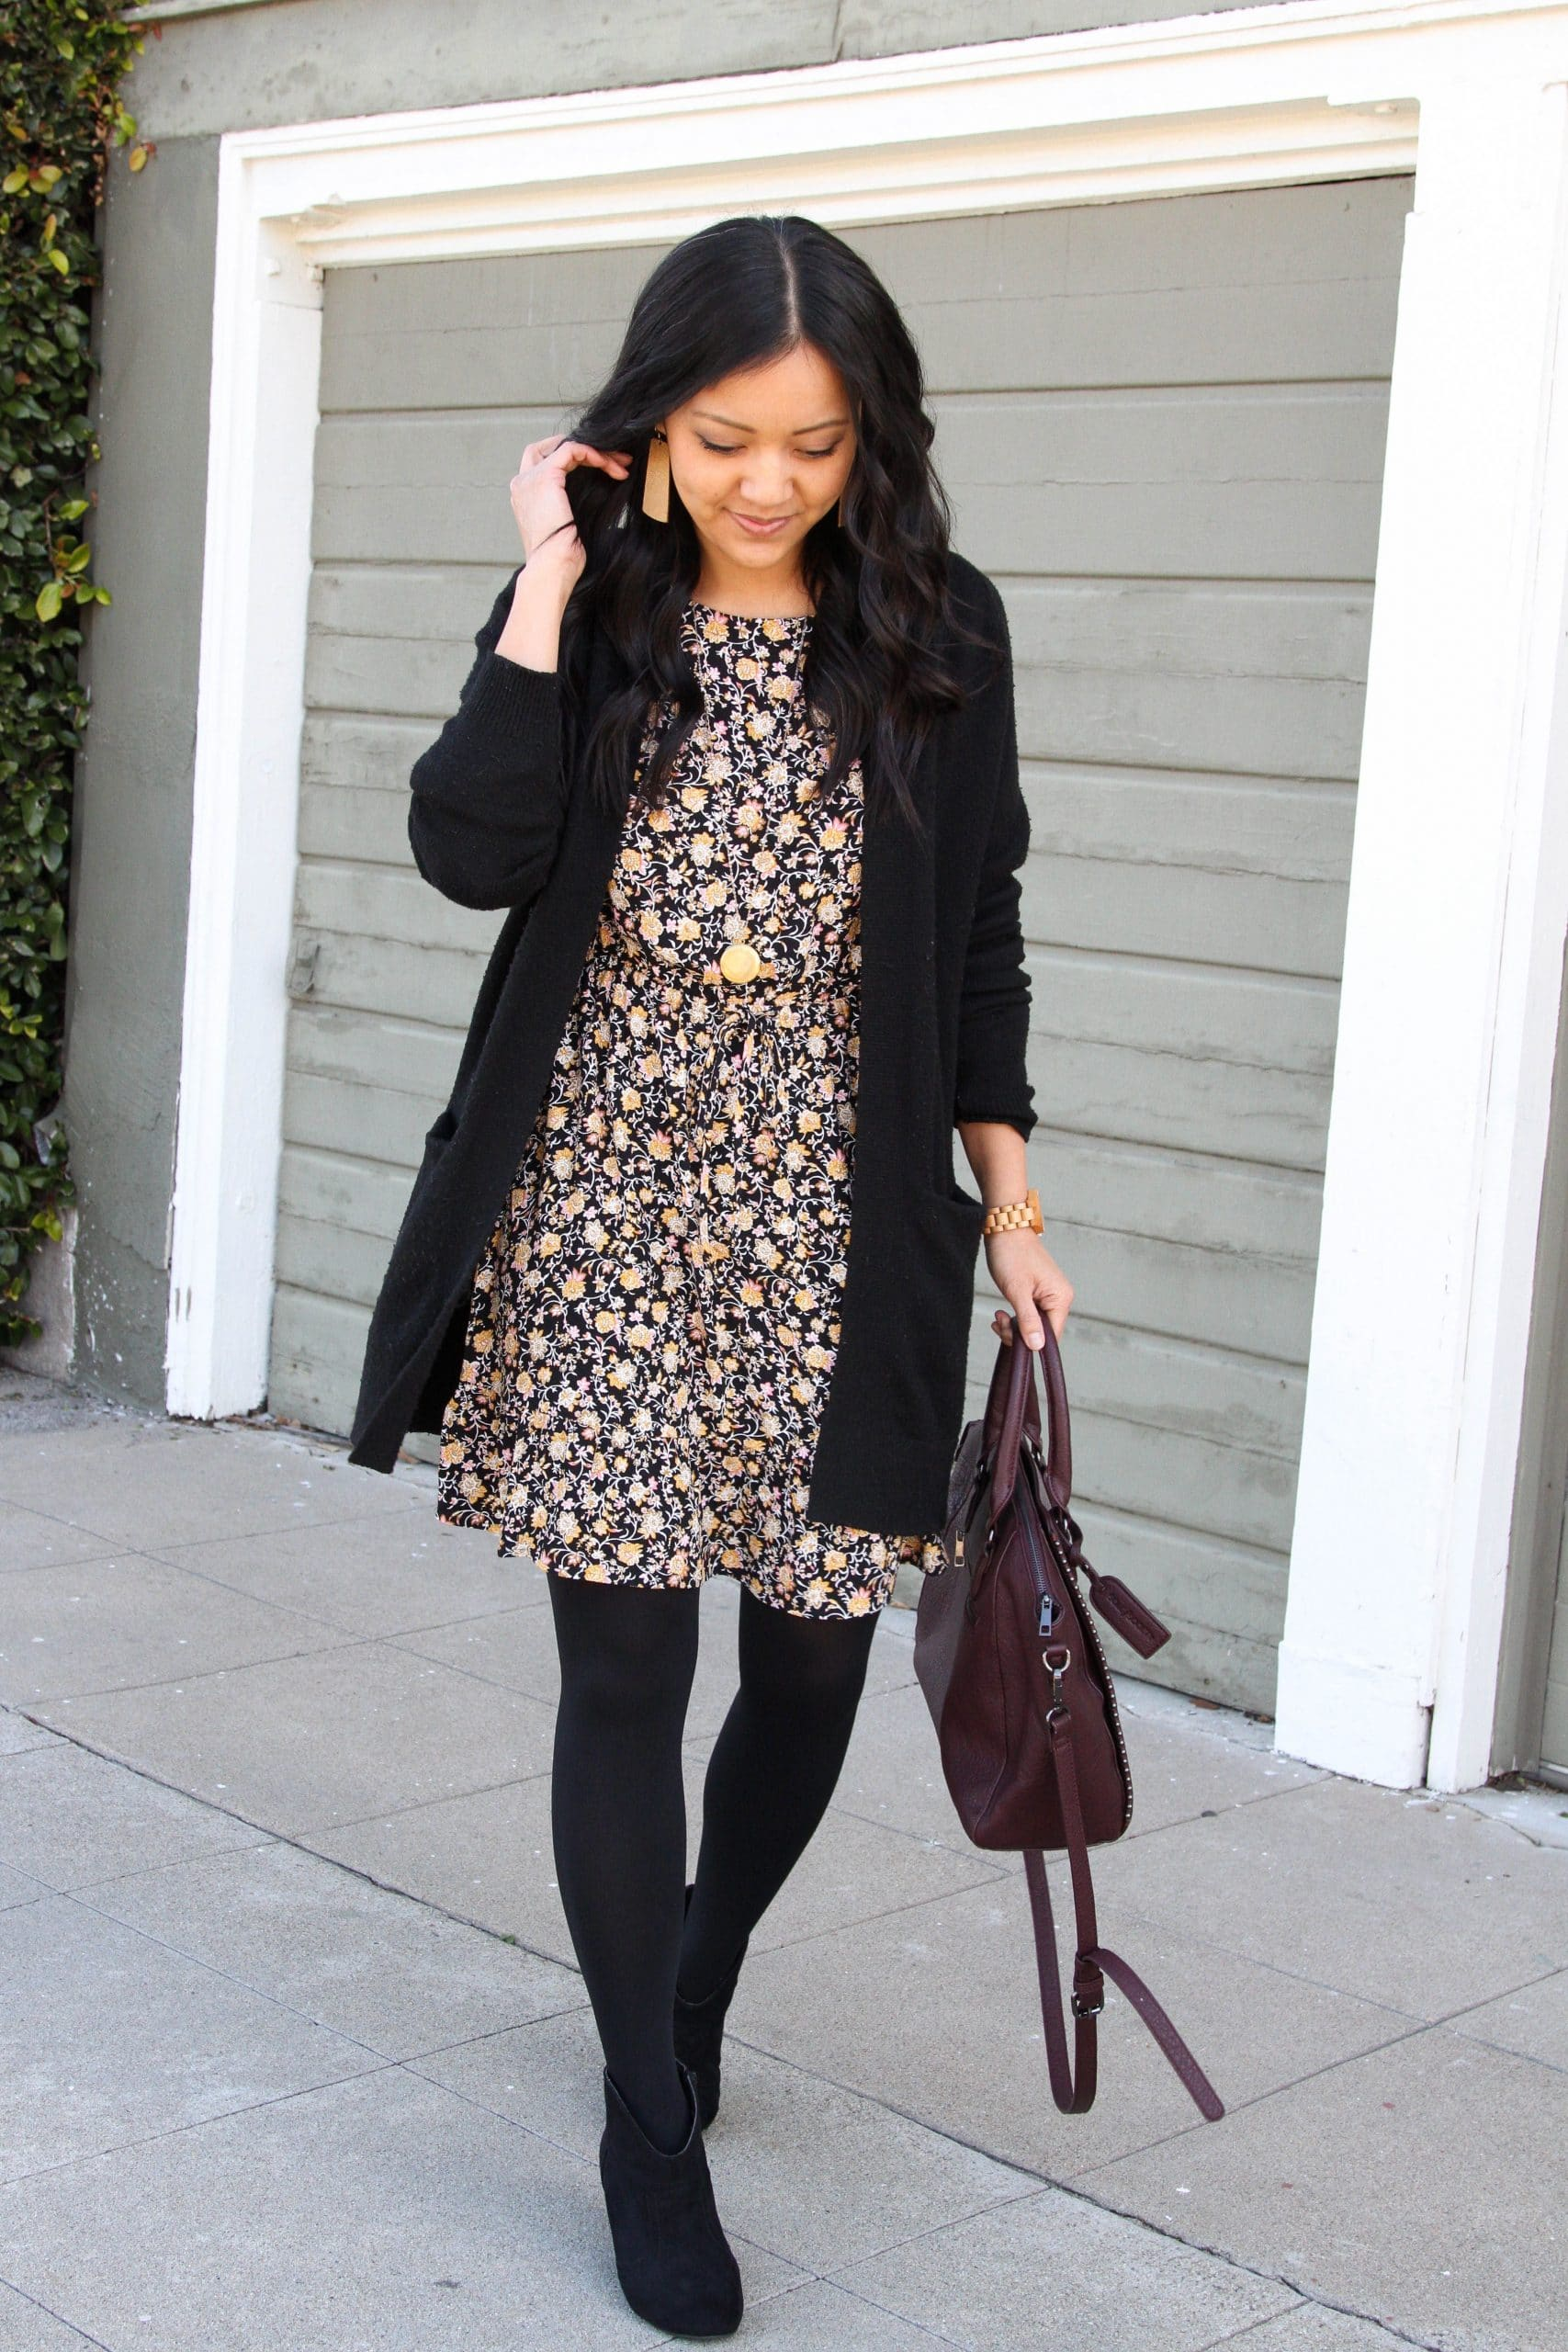 Winter Dress Outfit: floral print dress + black cardigan + black tights + black suede booties + maroon bag + long gold circle pendant necklace + tan leather earrings